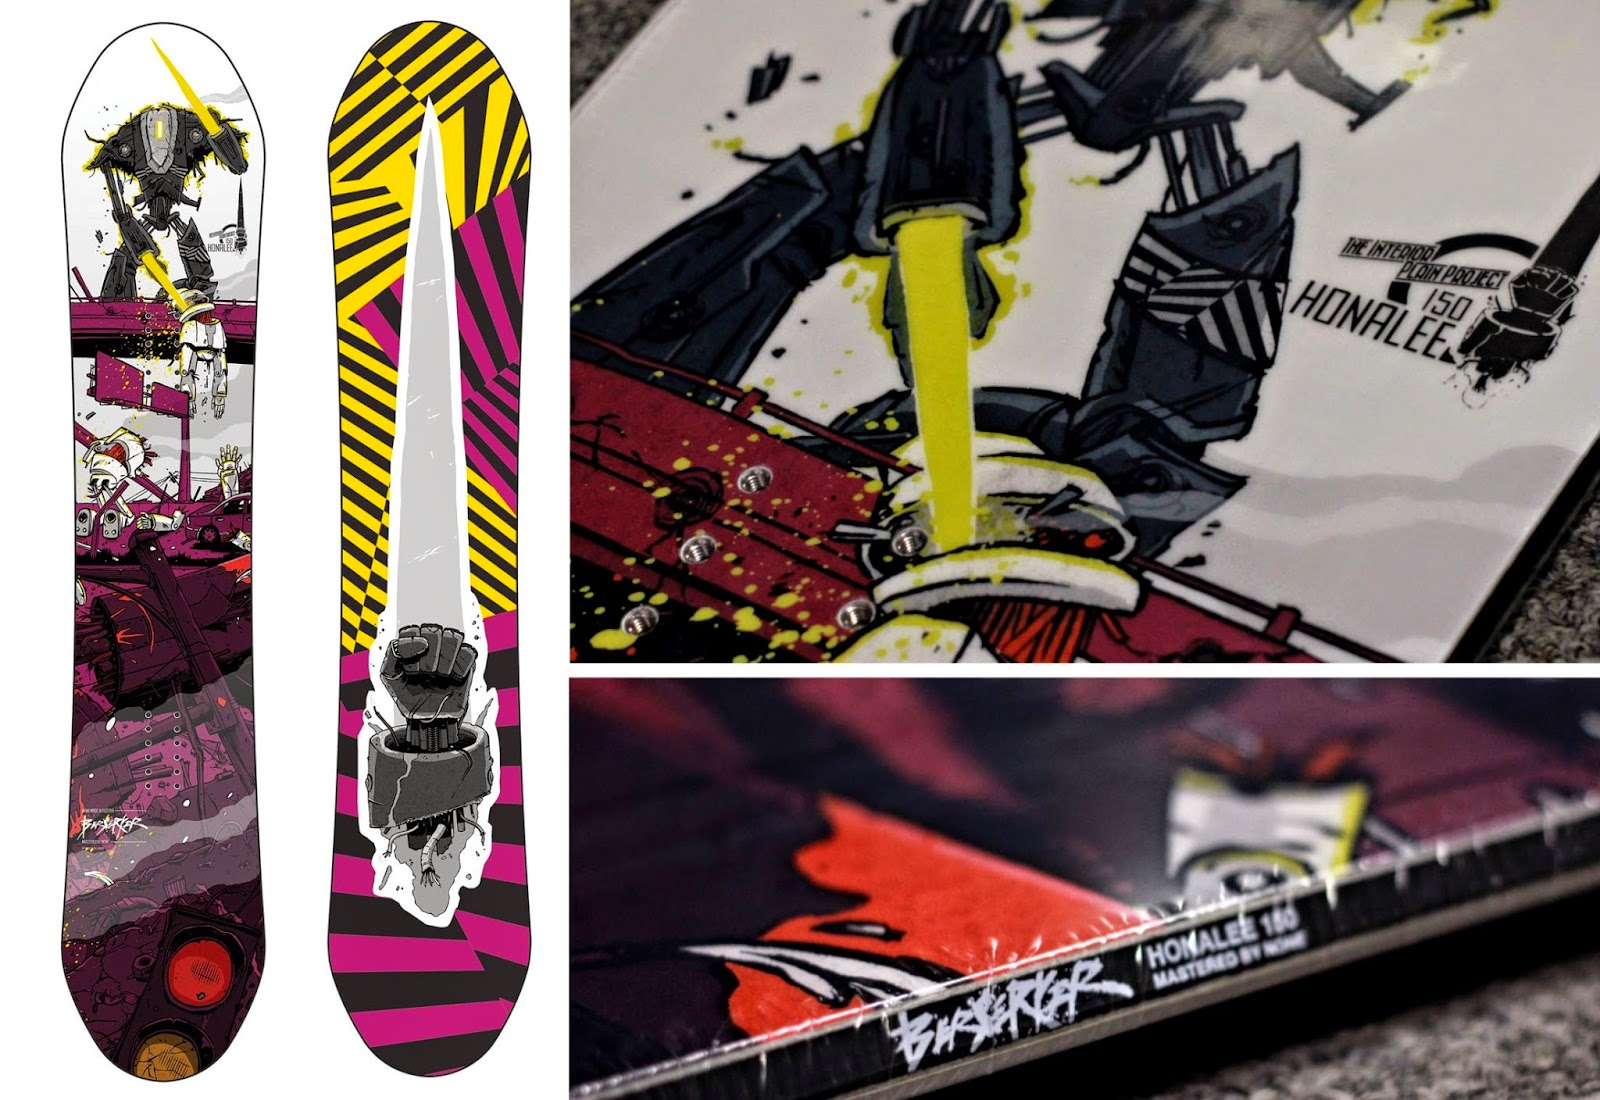 Adding A Great Amount Of Running Length Helps Command Full Of Control. This  Katana Of A Snowboard Will Be By Your Side As You Unleash Your Summer Of  Angst ...